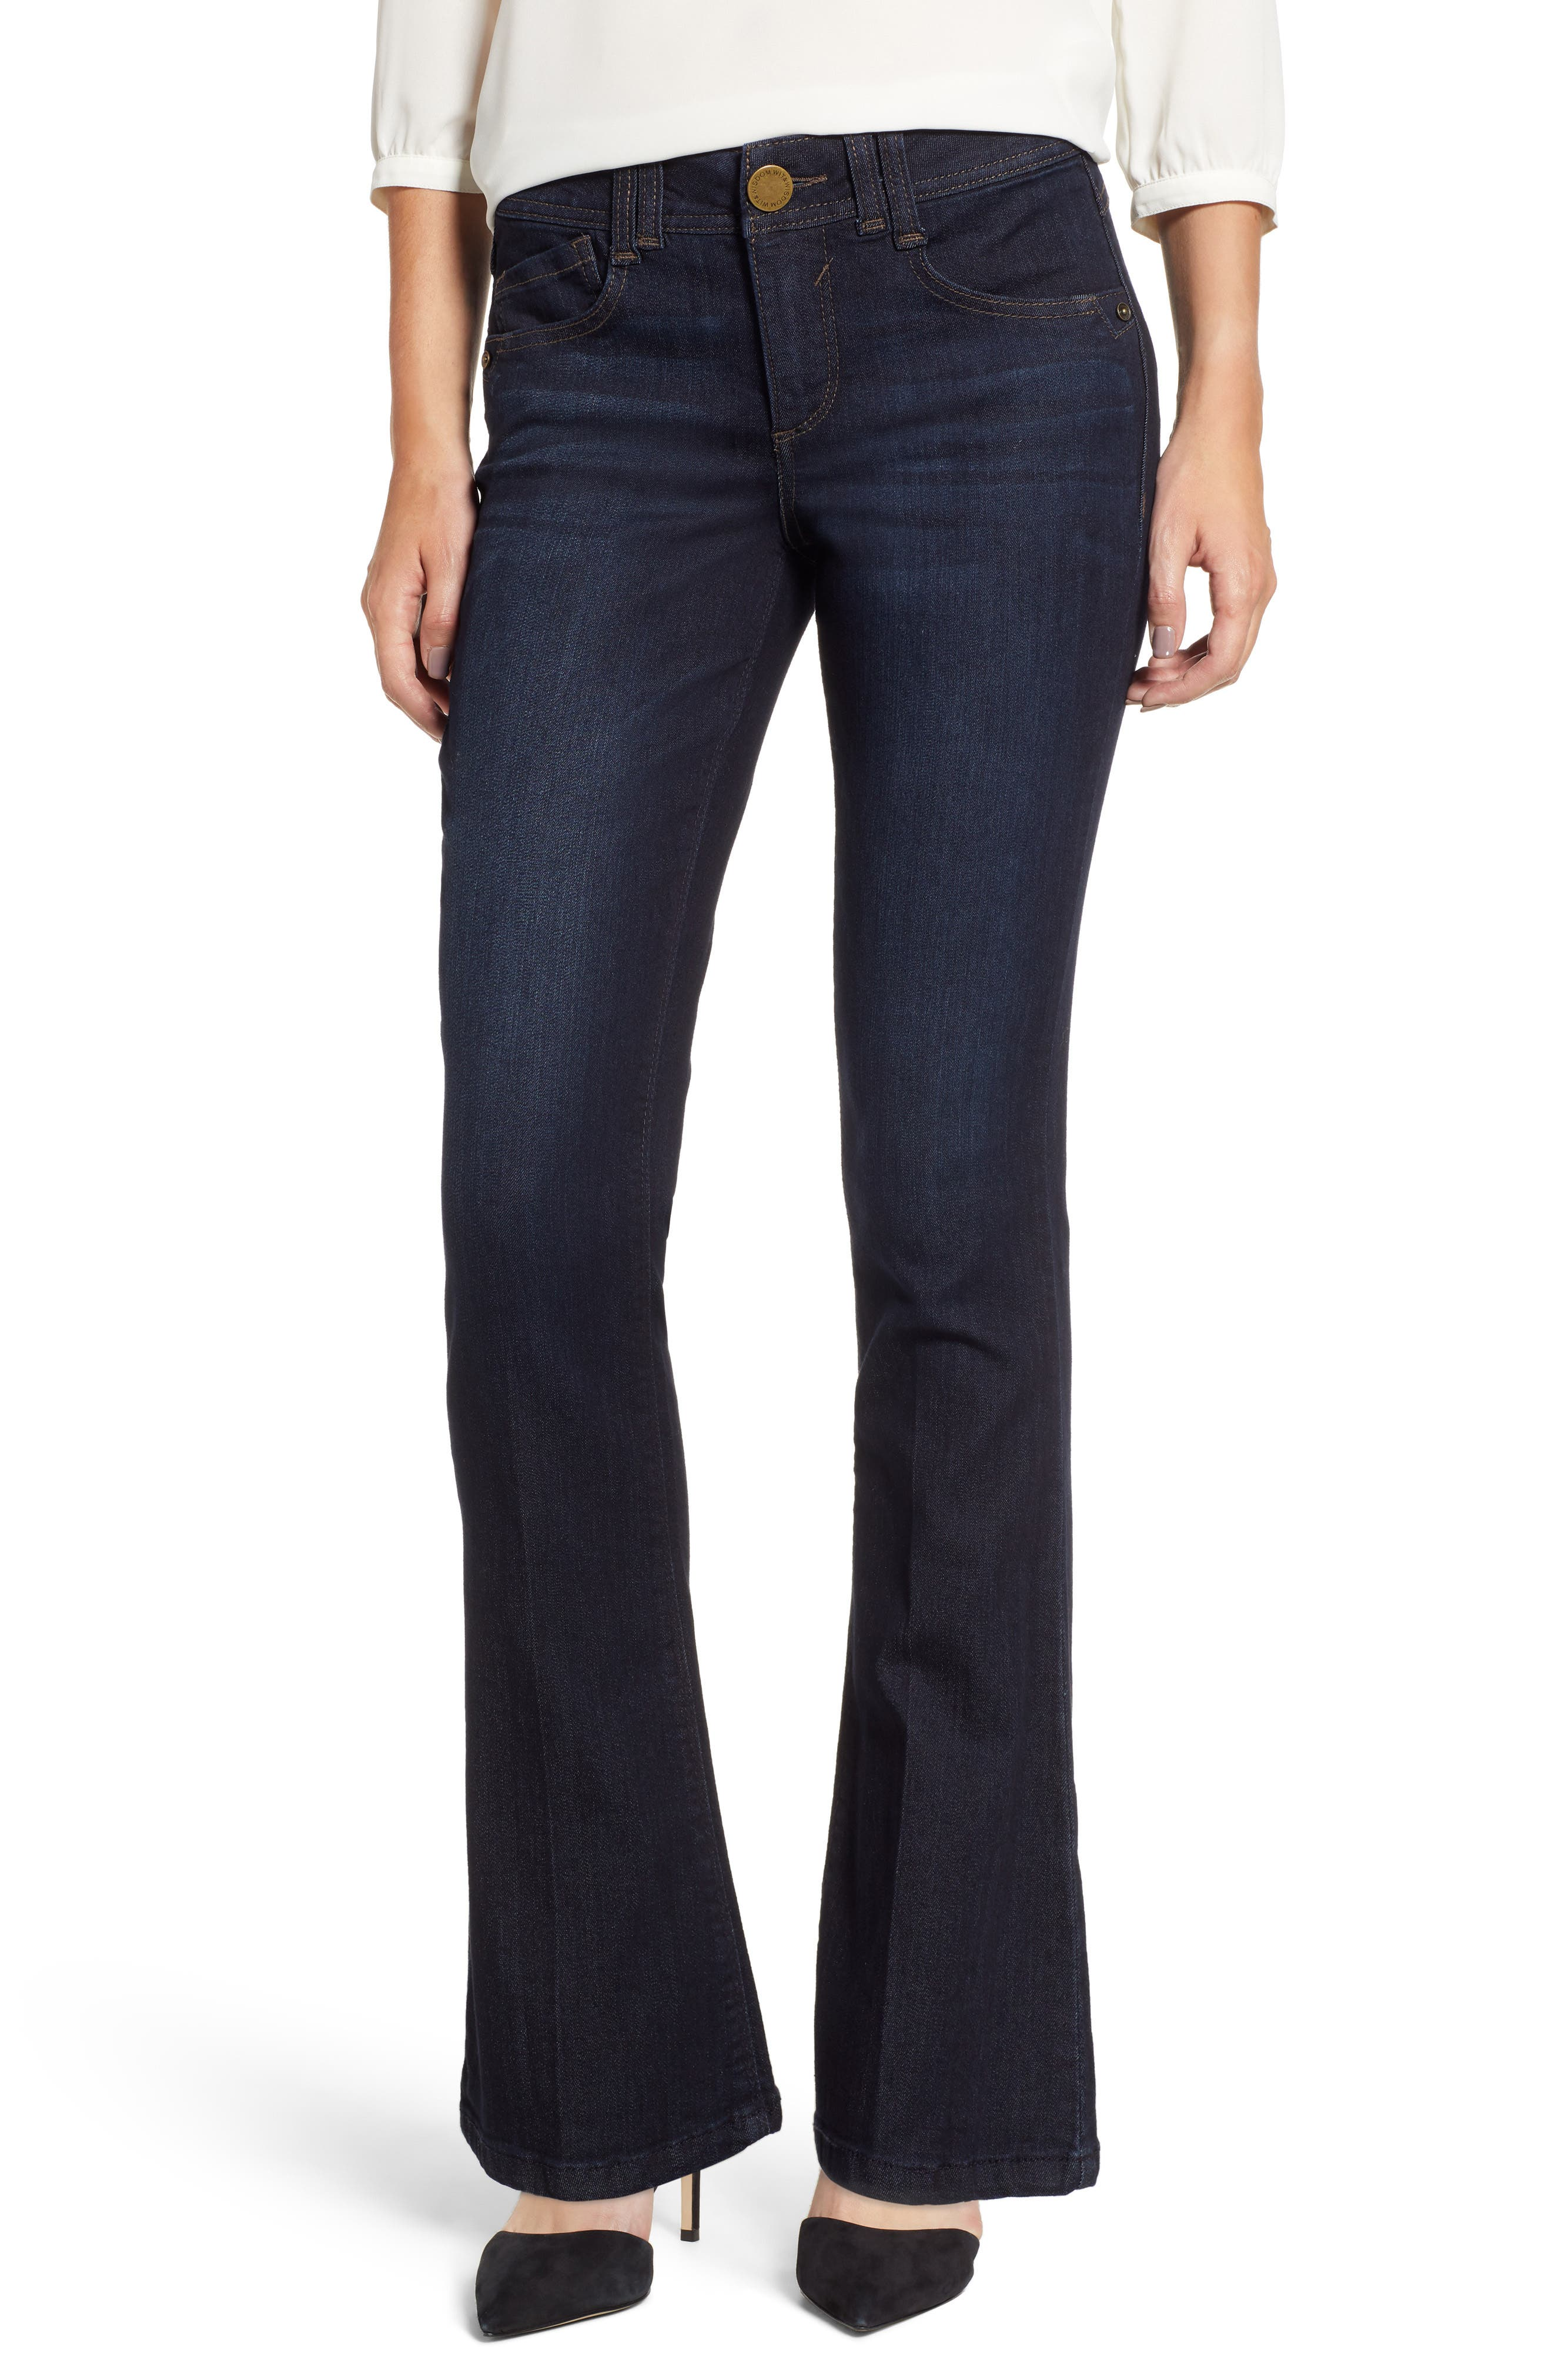 Ab-solution Itty Bitty Bootcut Jeans,                             Main thumbnail 1, color,                             INDIGO